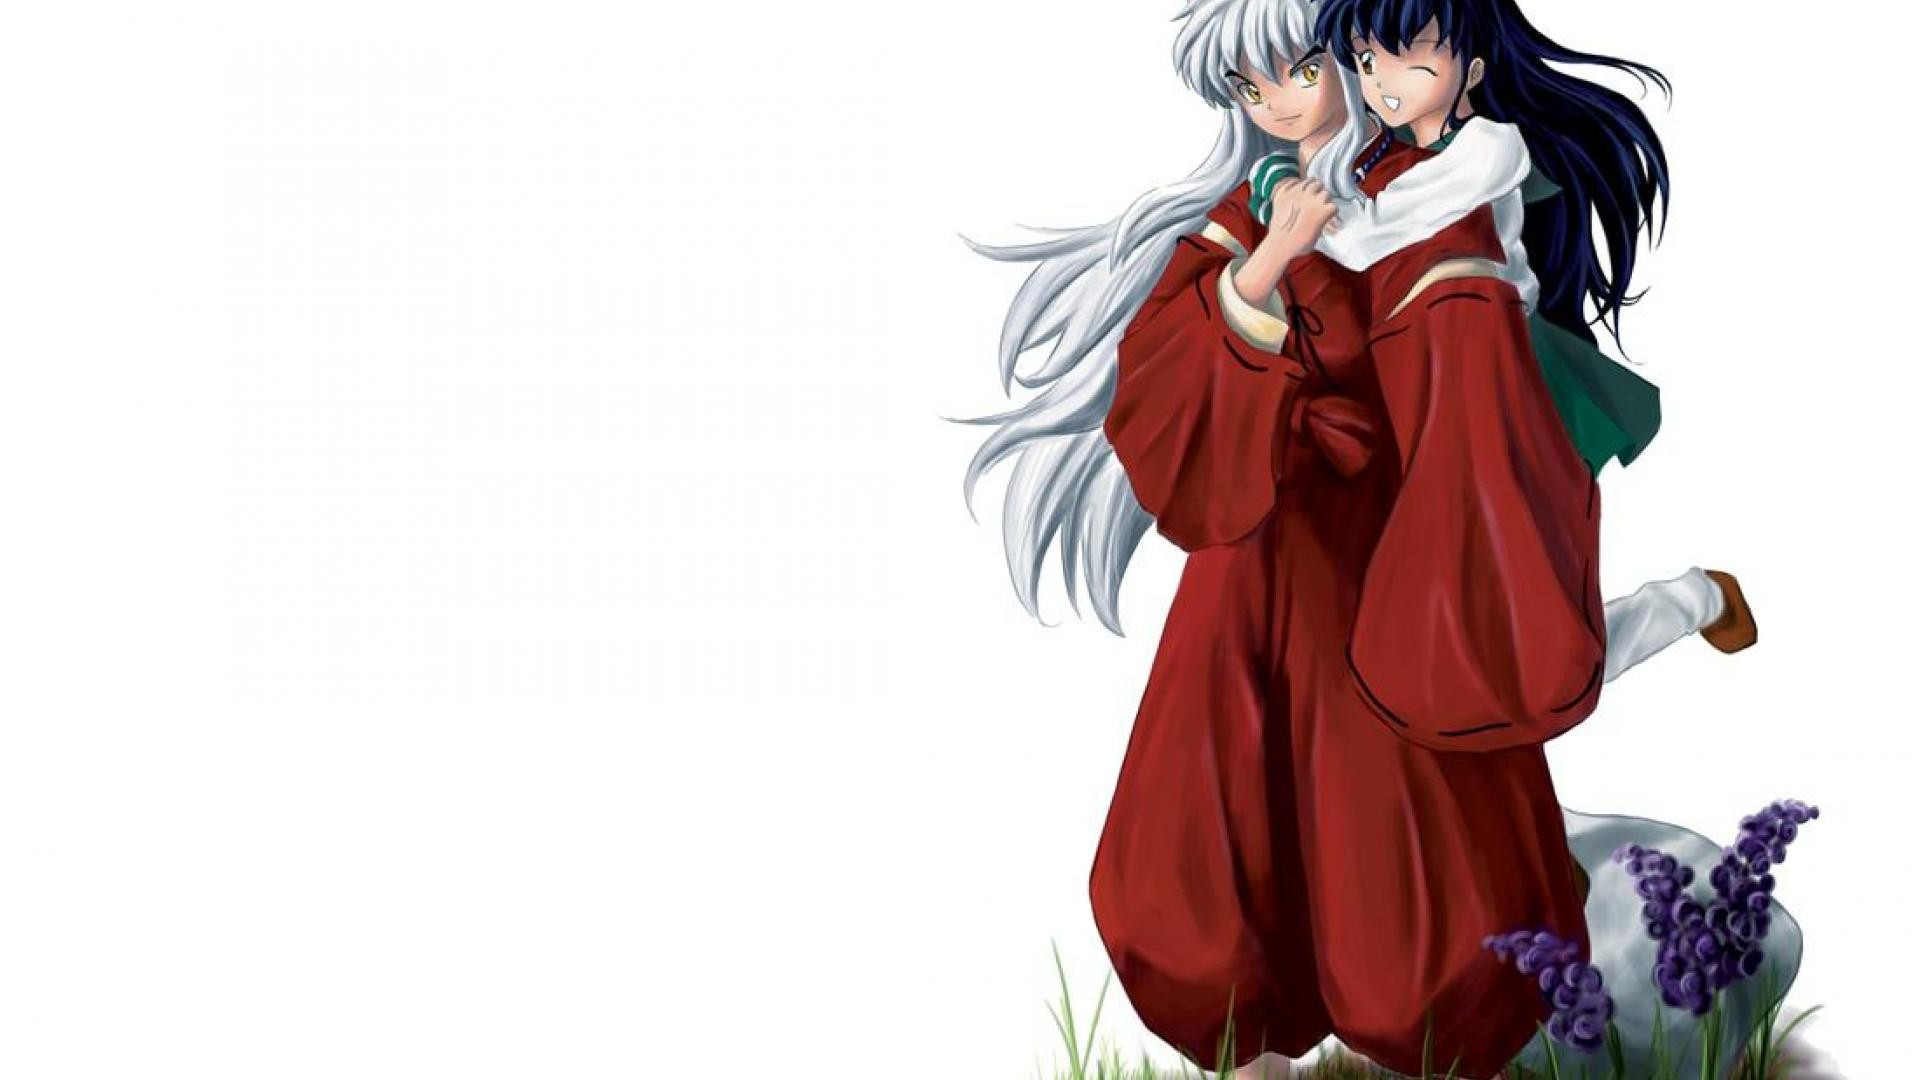 Inuyasha Wallpapers (66+ images)